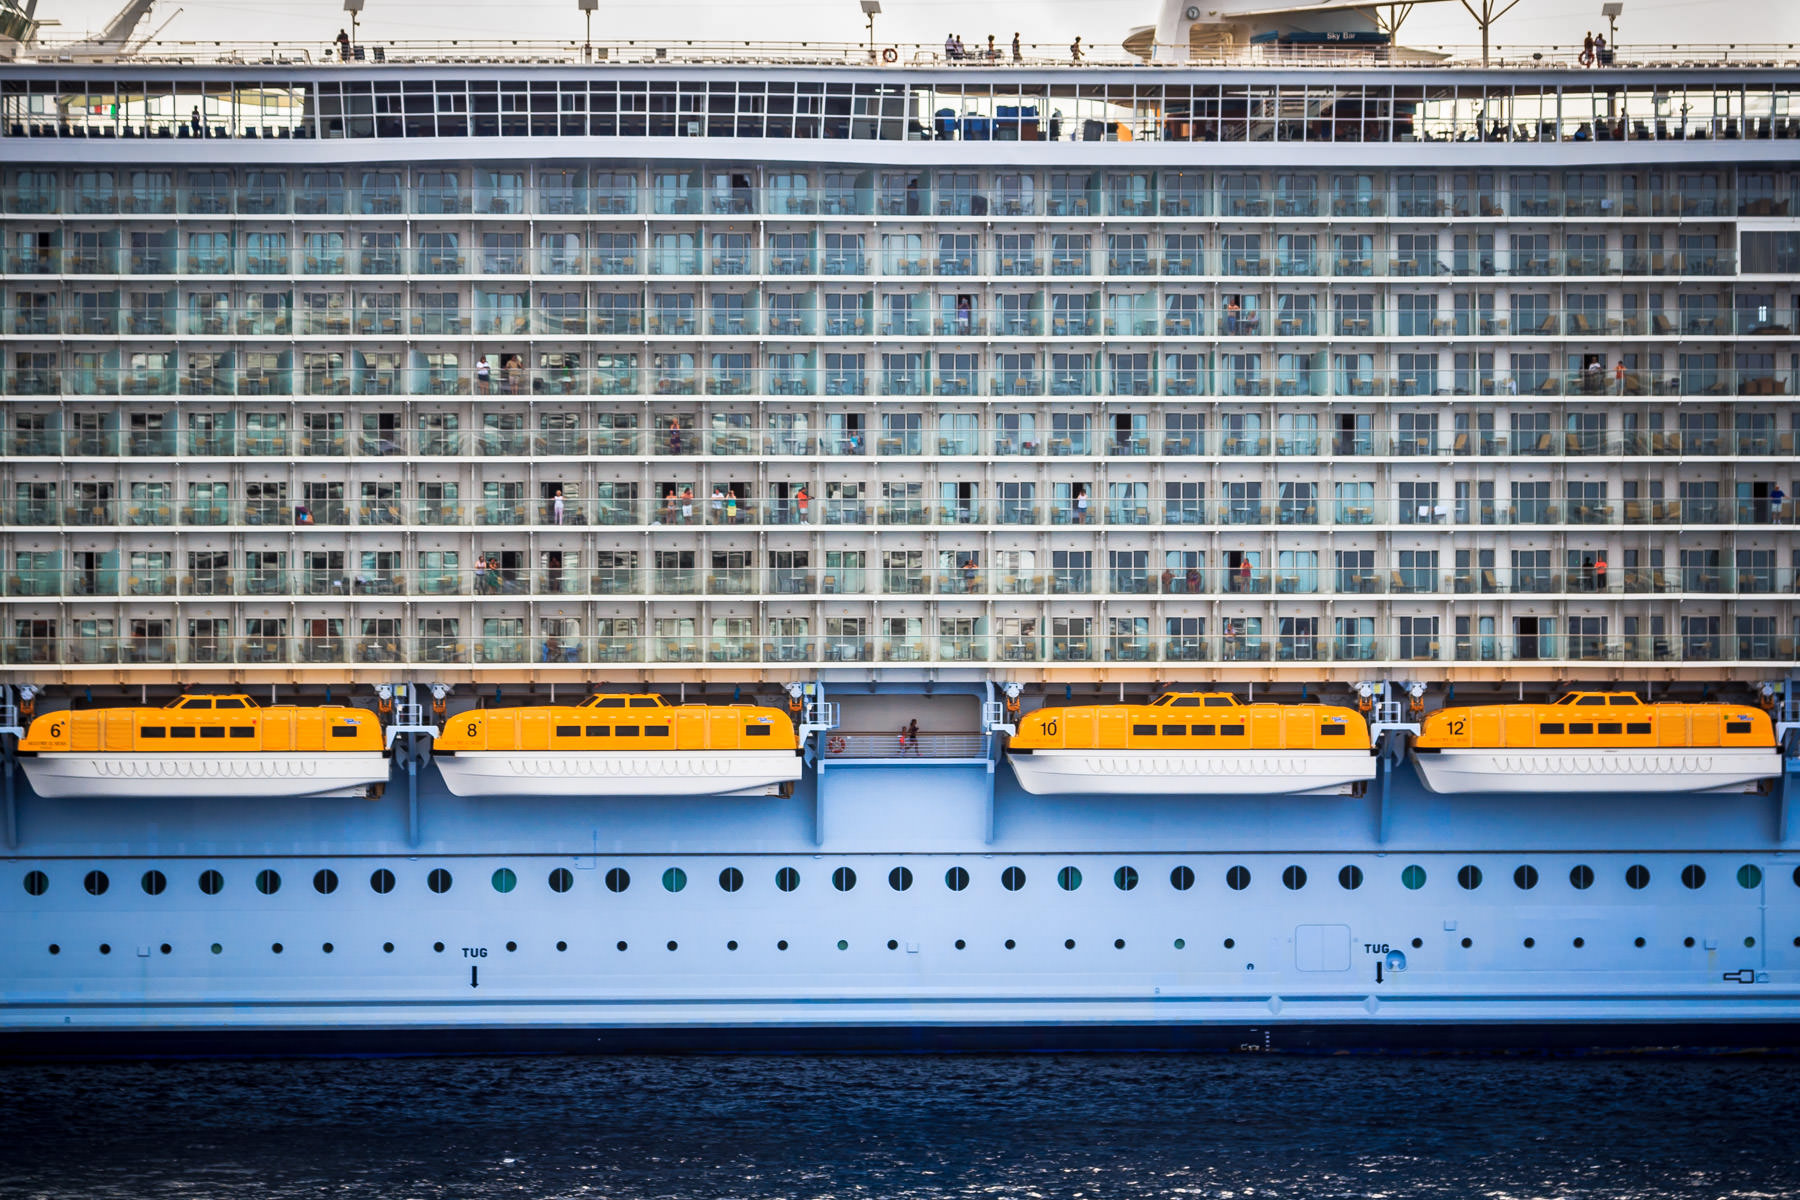 Detail of Royal Caribbean's Allure of the Seas—the largest passenger ship ever built—while docked in Cozumel, Mexico.